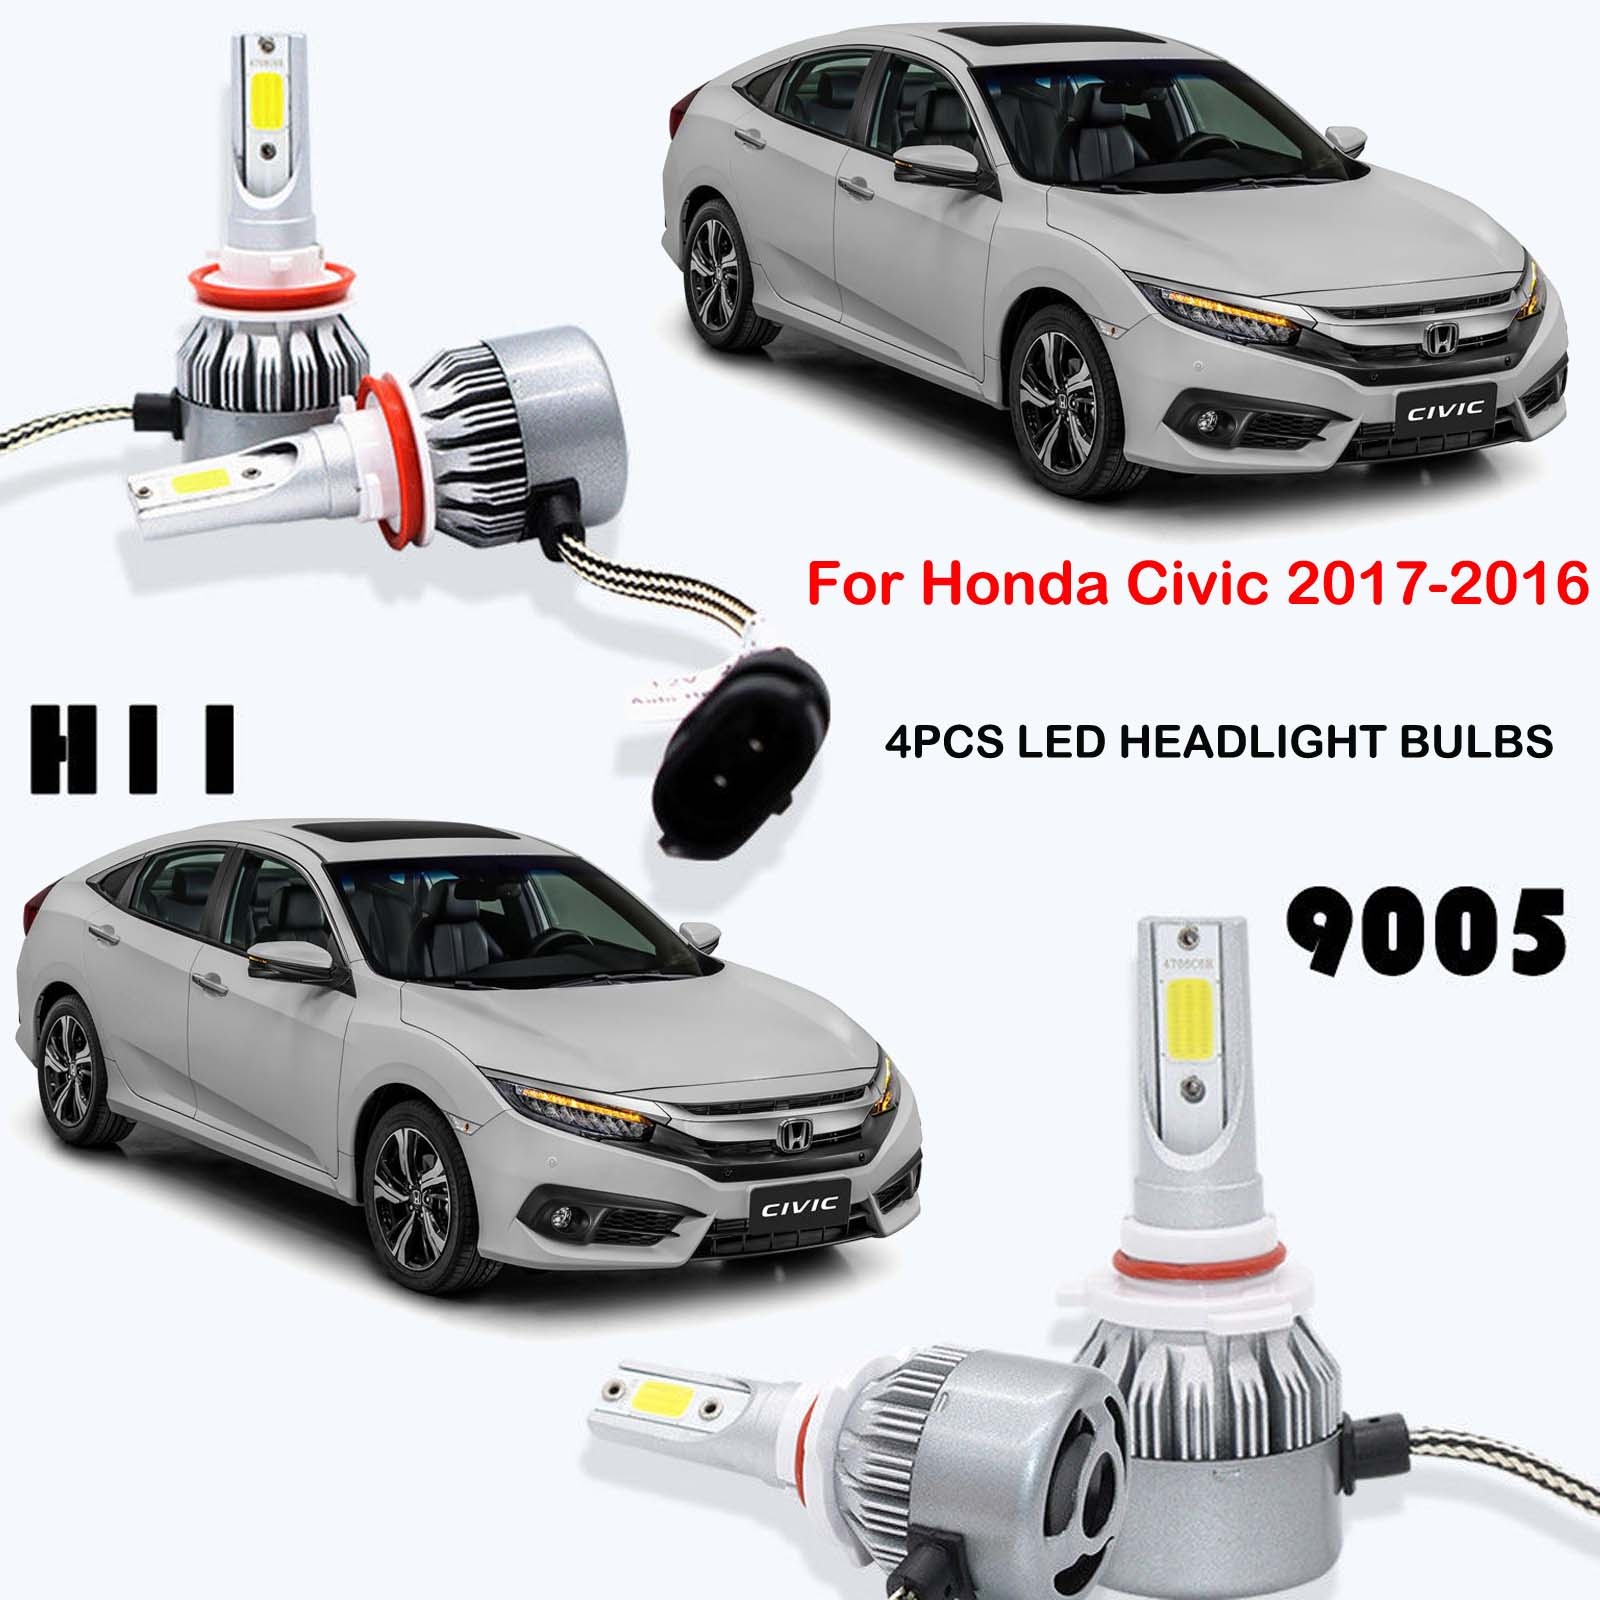 H11 9005 HB3 LED Headlight Kits Power Bulbs For Honda Civic 2017-2016  Replace HI